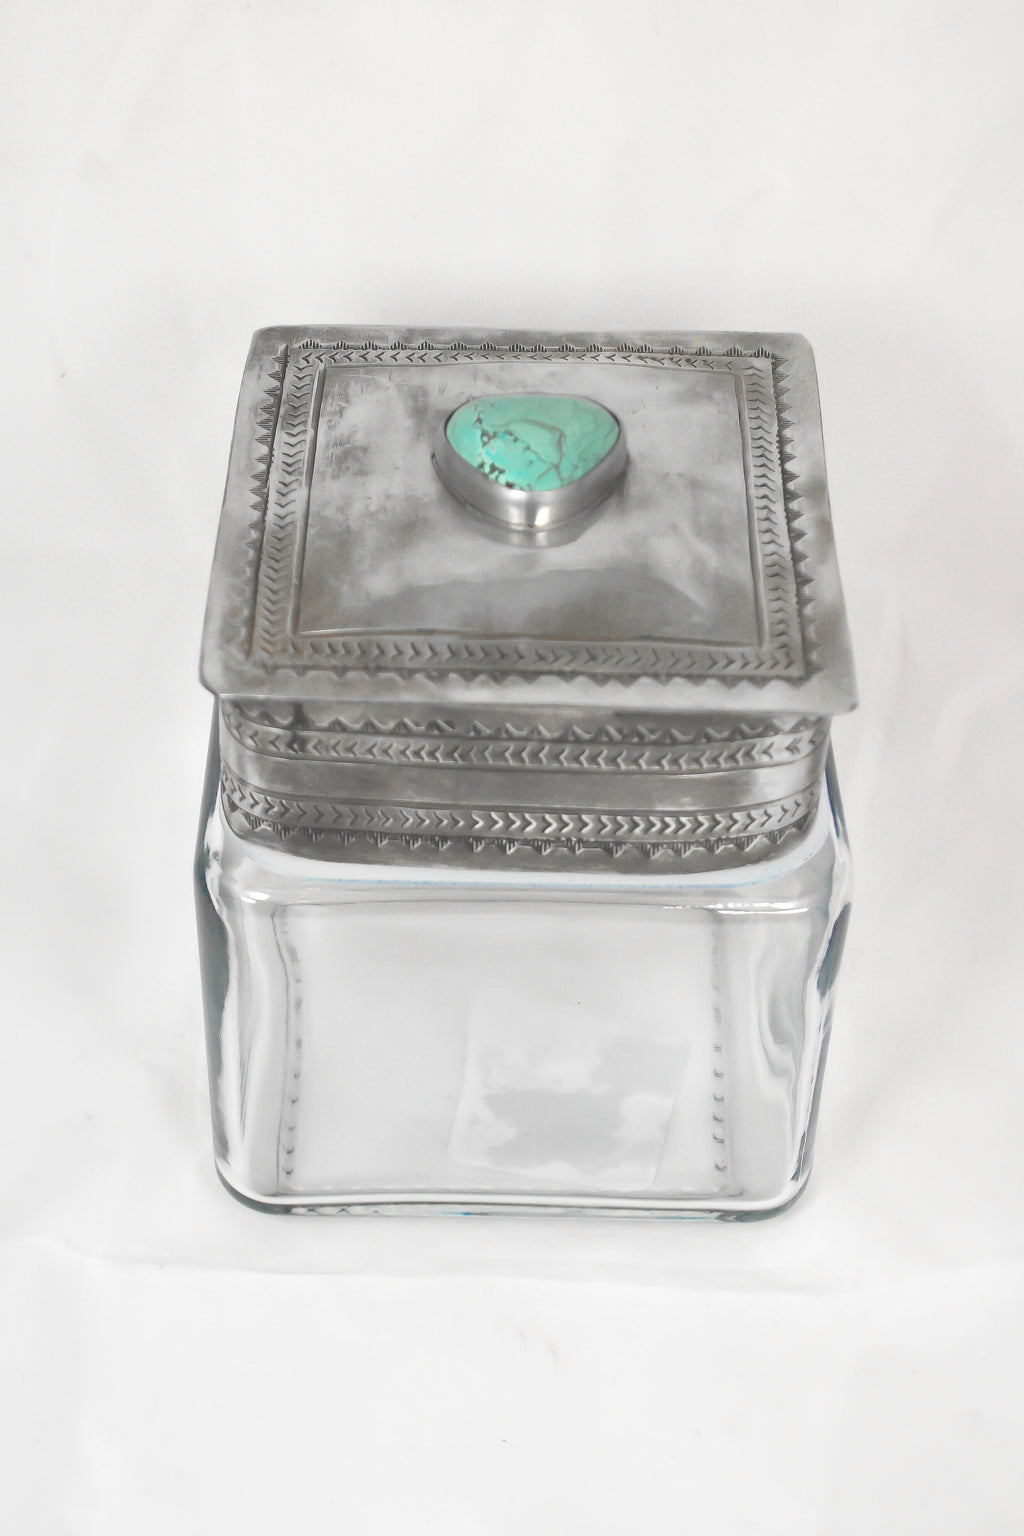 STAMPED TURQUOISE LID WITH GLASS CANISTER